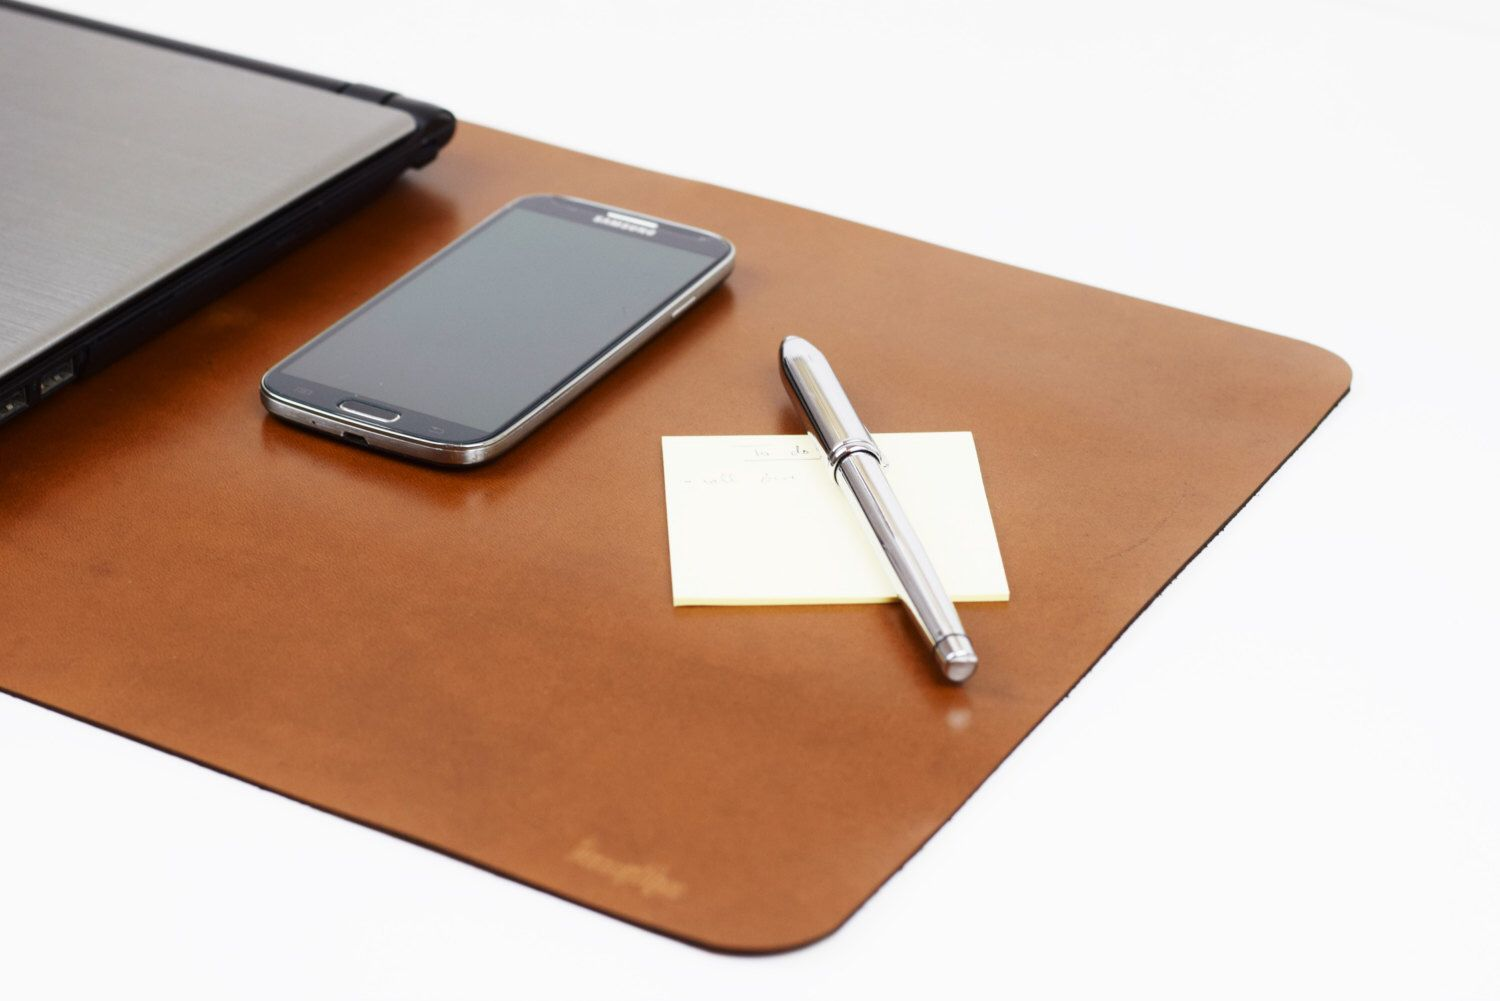 Bon Leather Desk Pad, Leather Desk Mat, Desktop Mouse Pad, Office Mouse Pad,